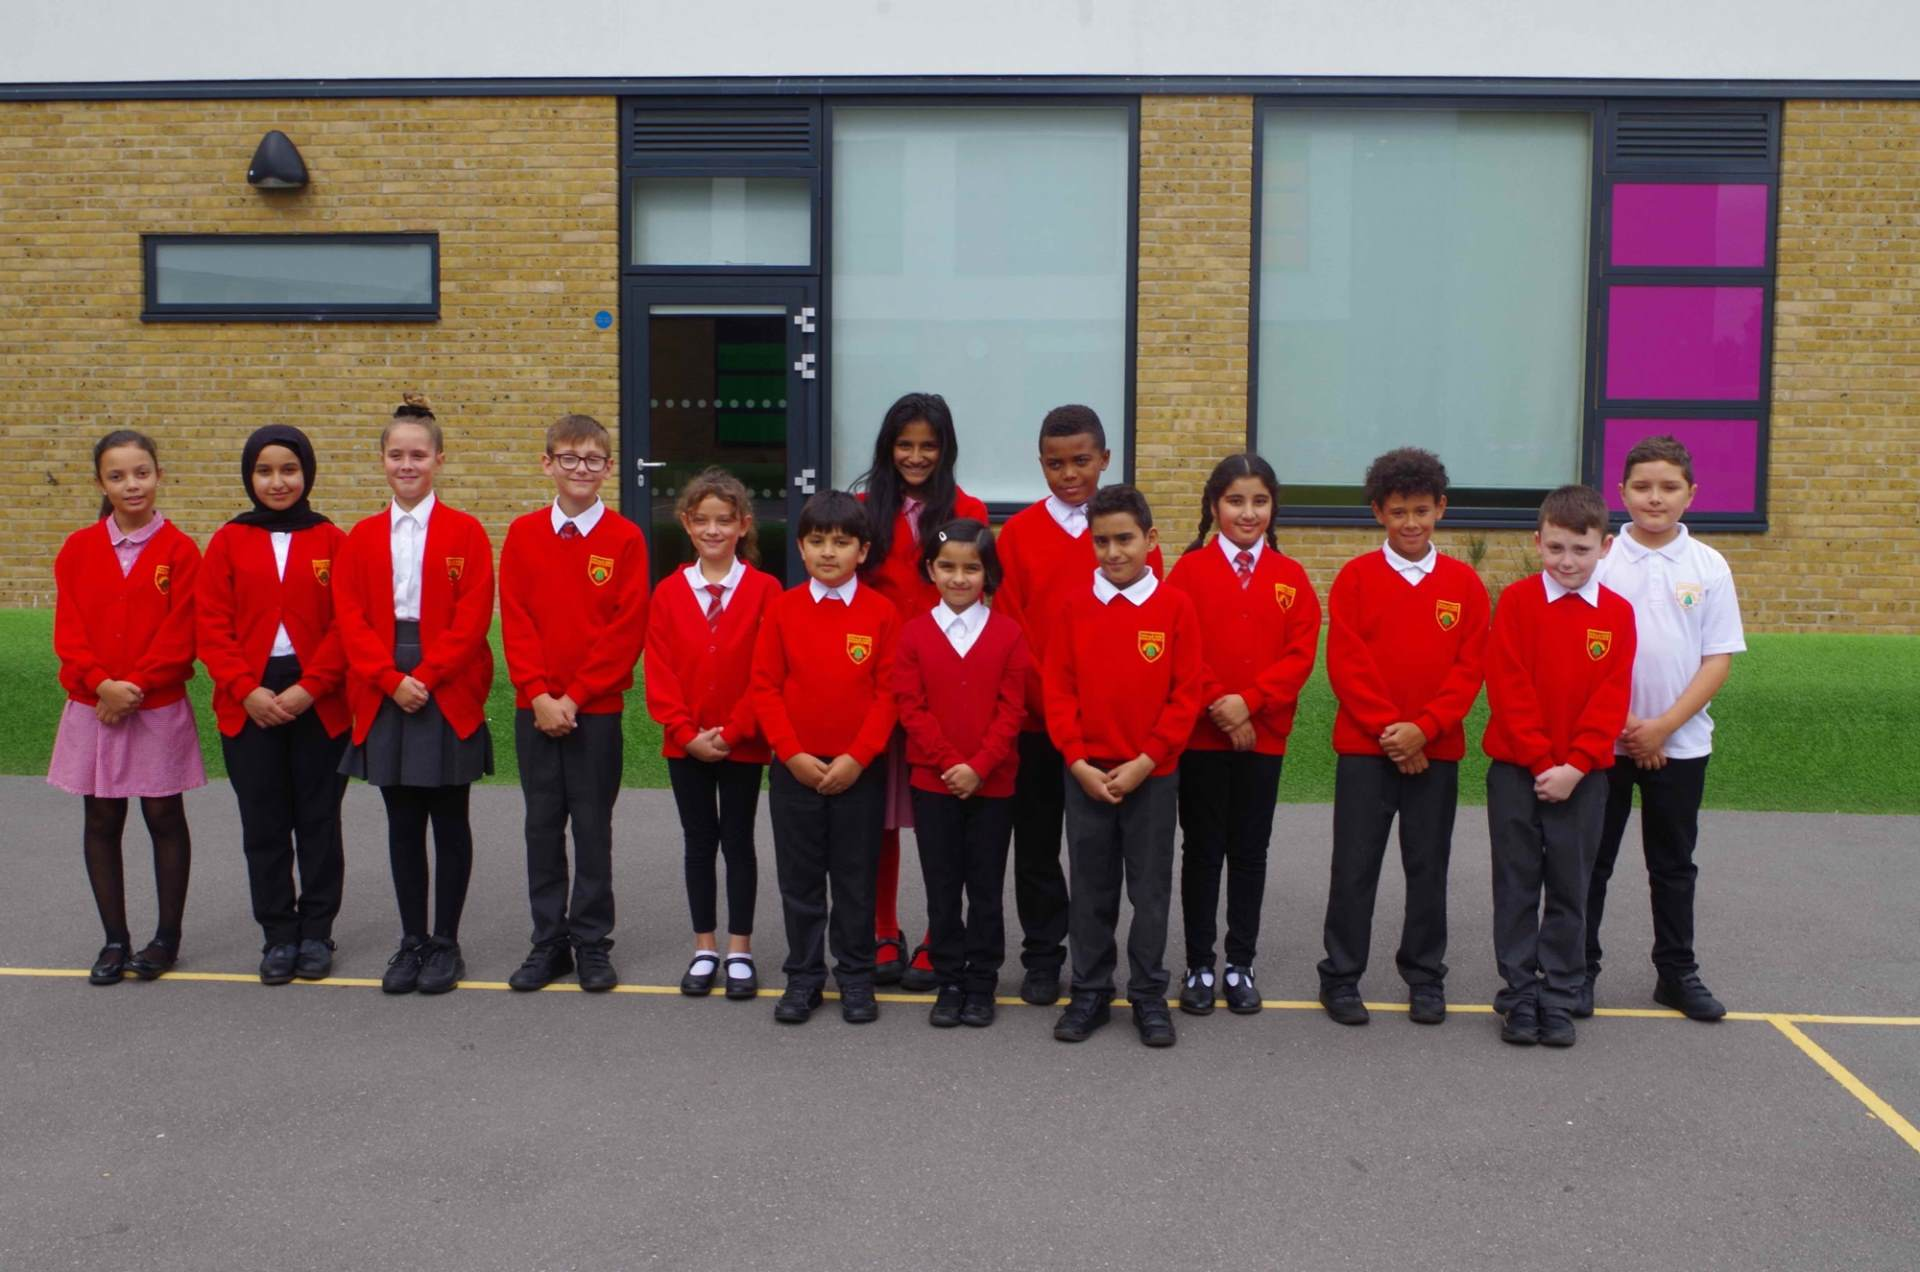 Weald Rise Primary School Council